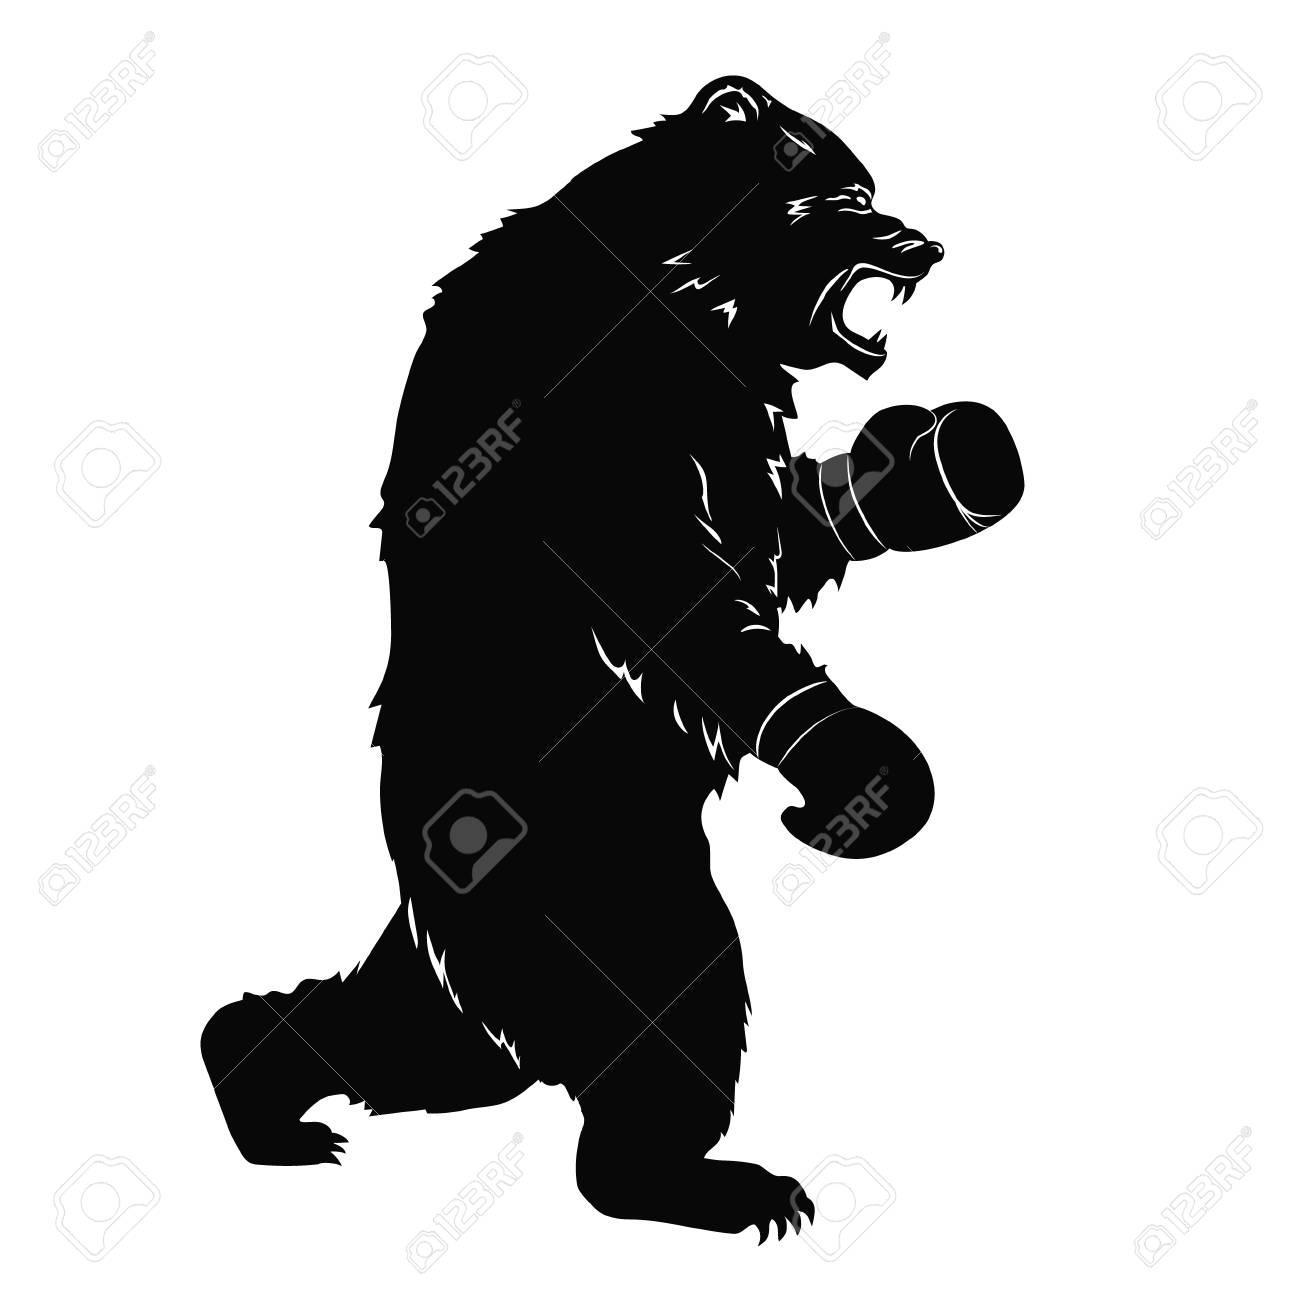 black bear in boxing gloves silhouette of a wild animal for